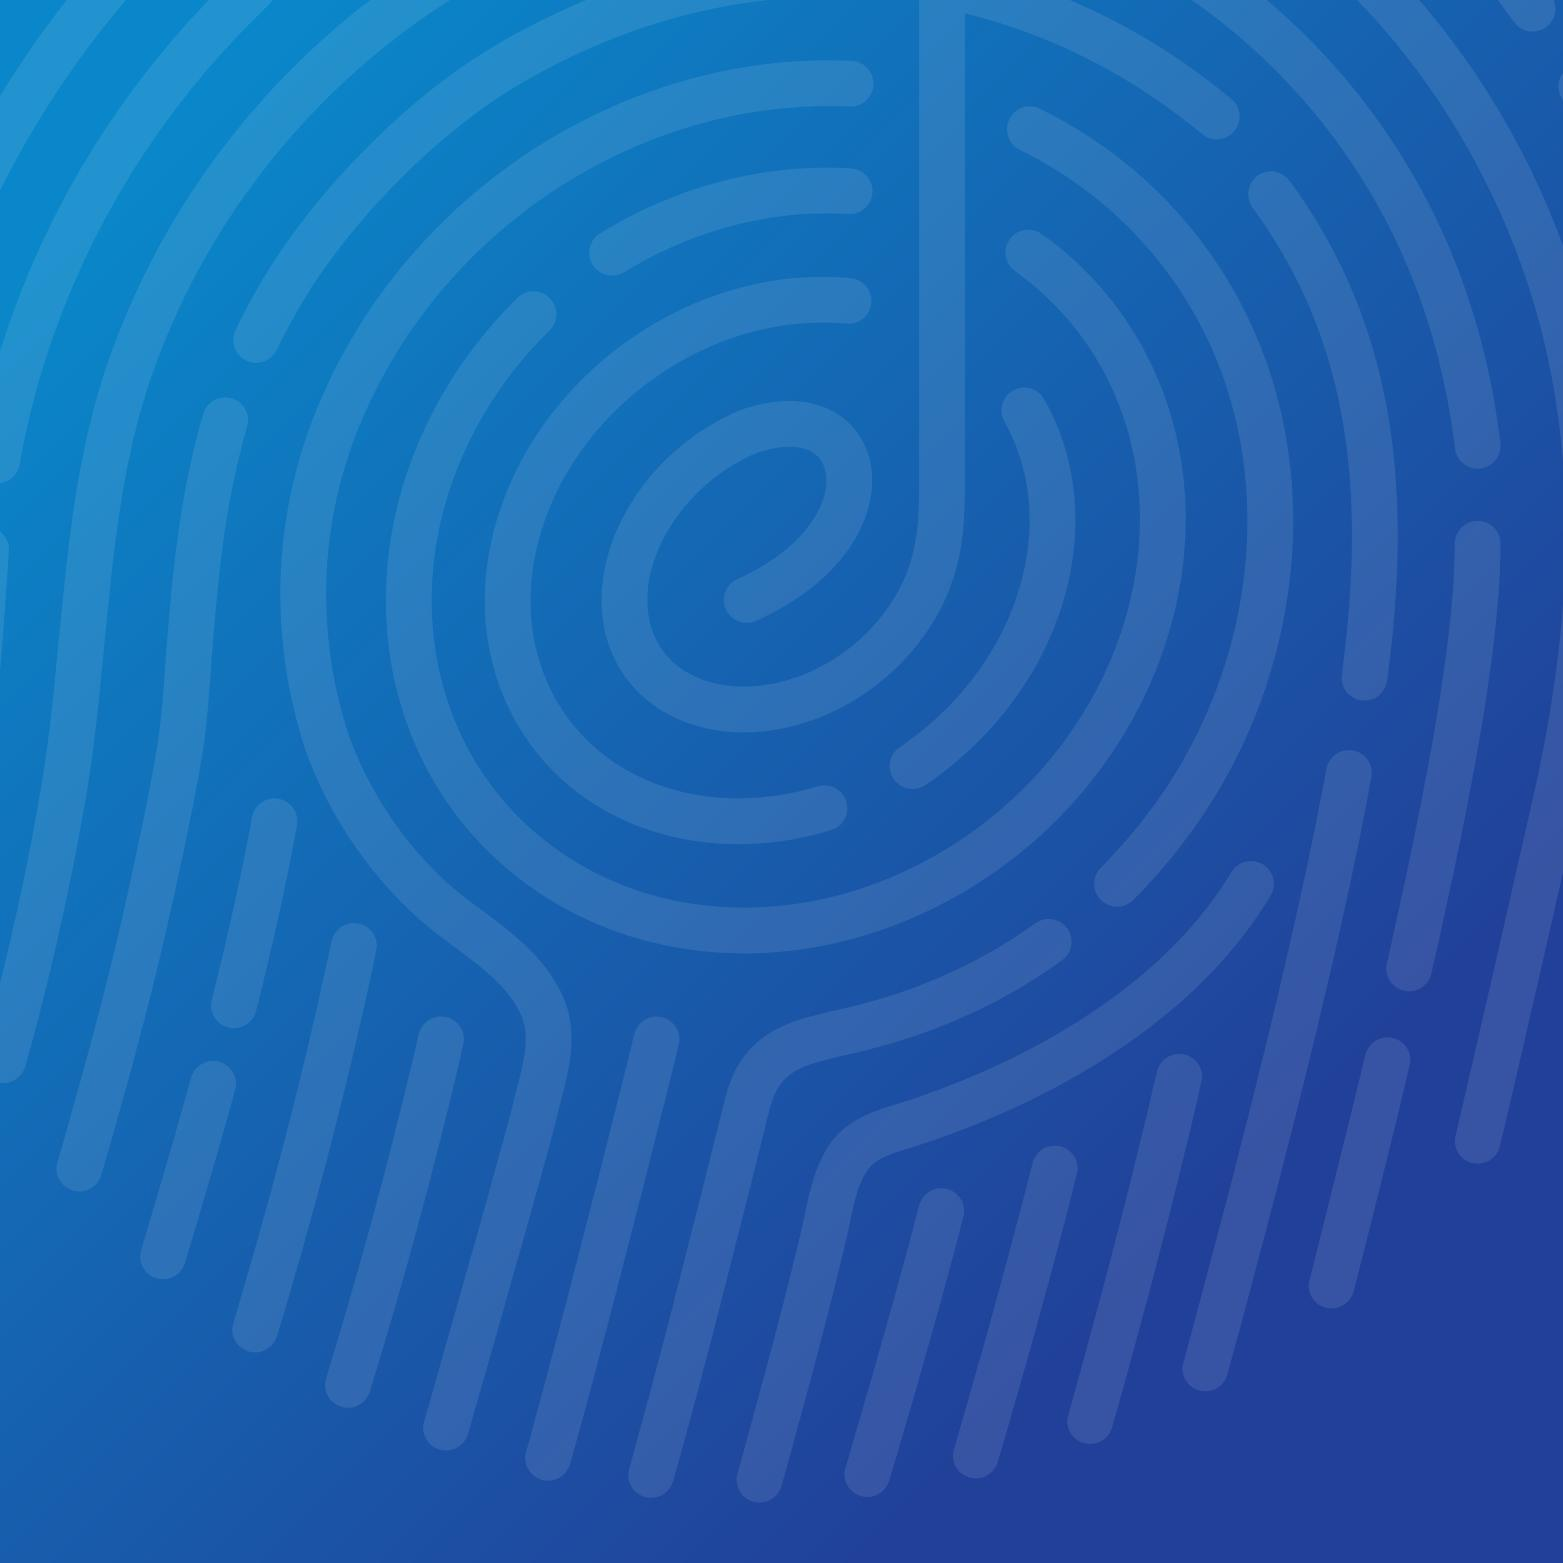 Pandora's Thumbprint Radio Marks 5thAnniversary with 50 Million Users and Over 2 Billion Listening Hours